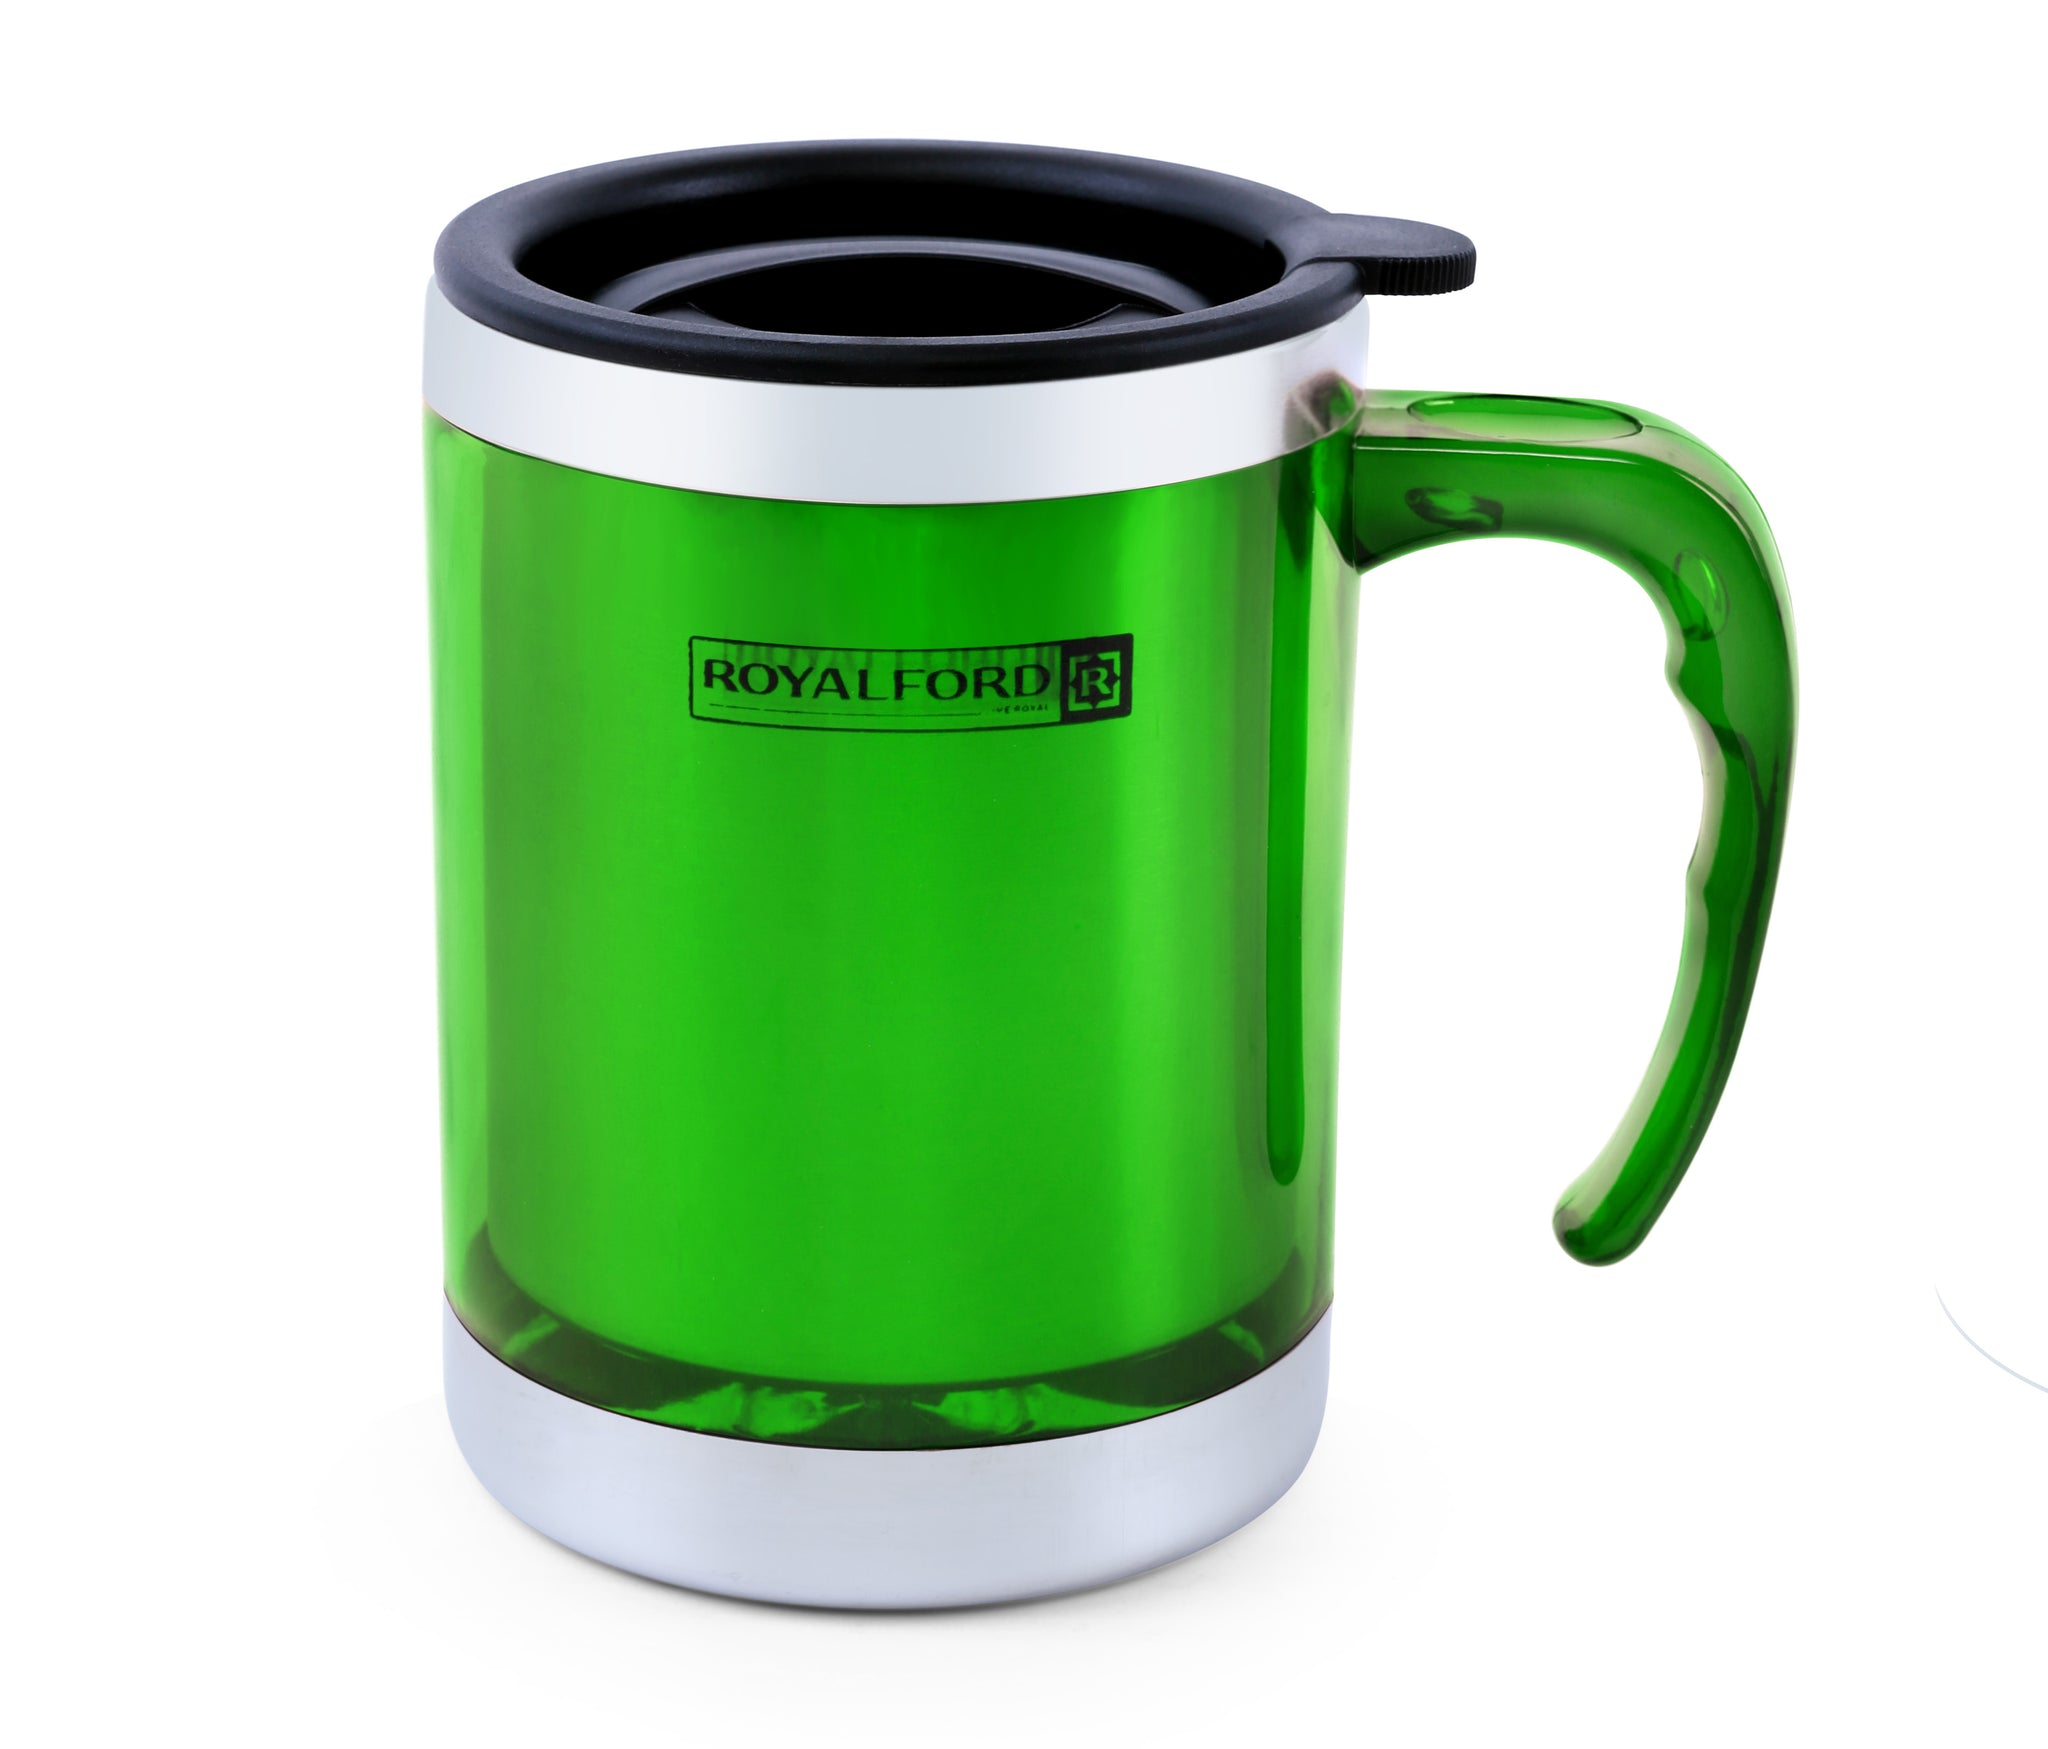 Royalford RF5130 Travel Mug, 14 Oz